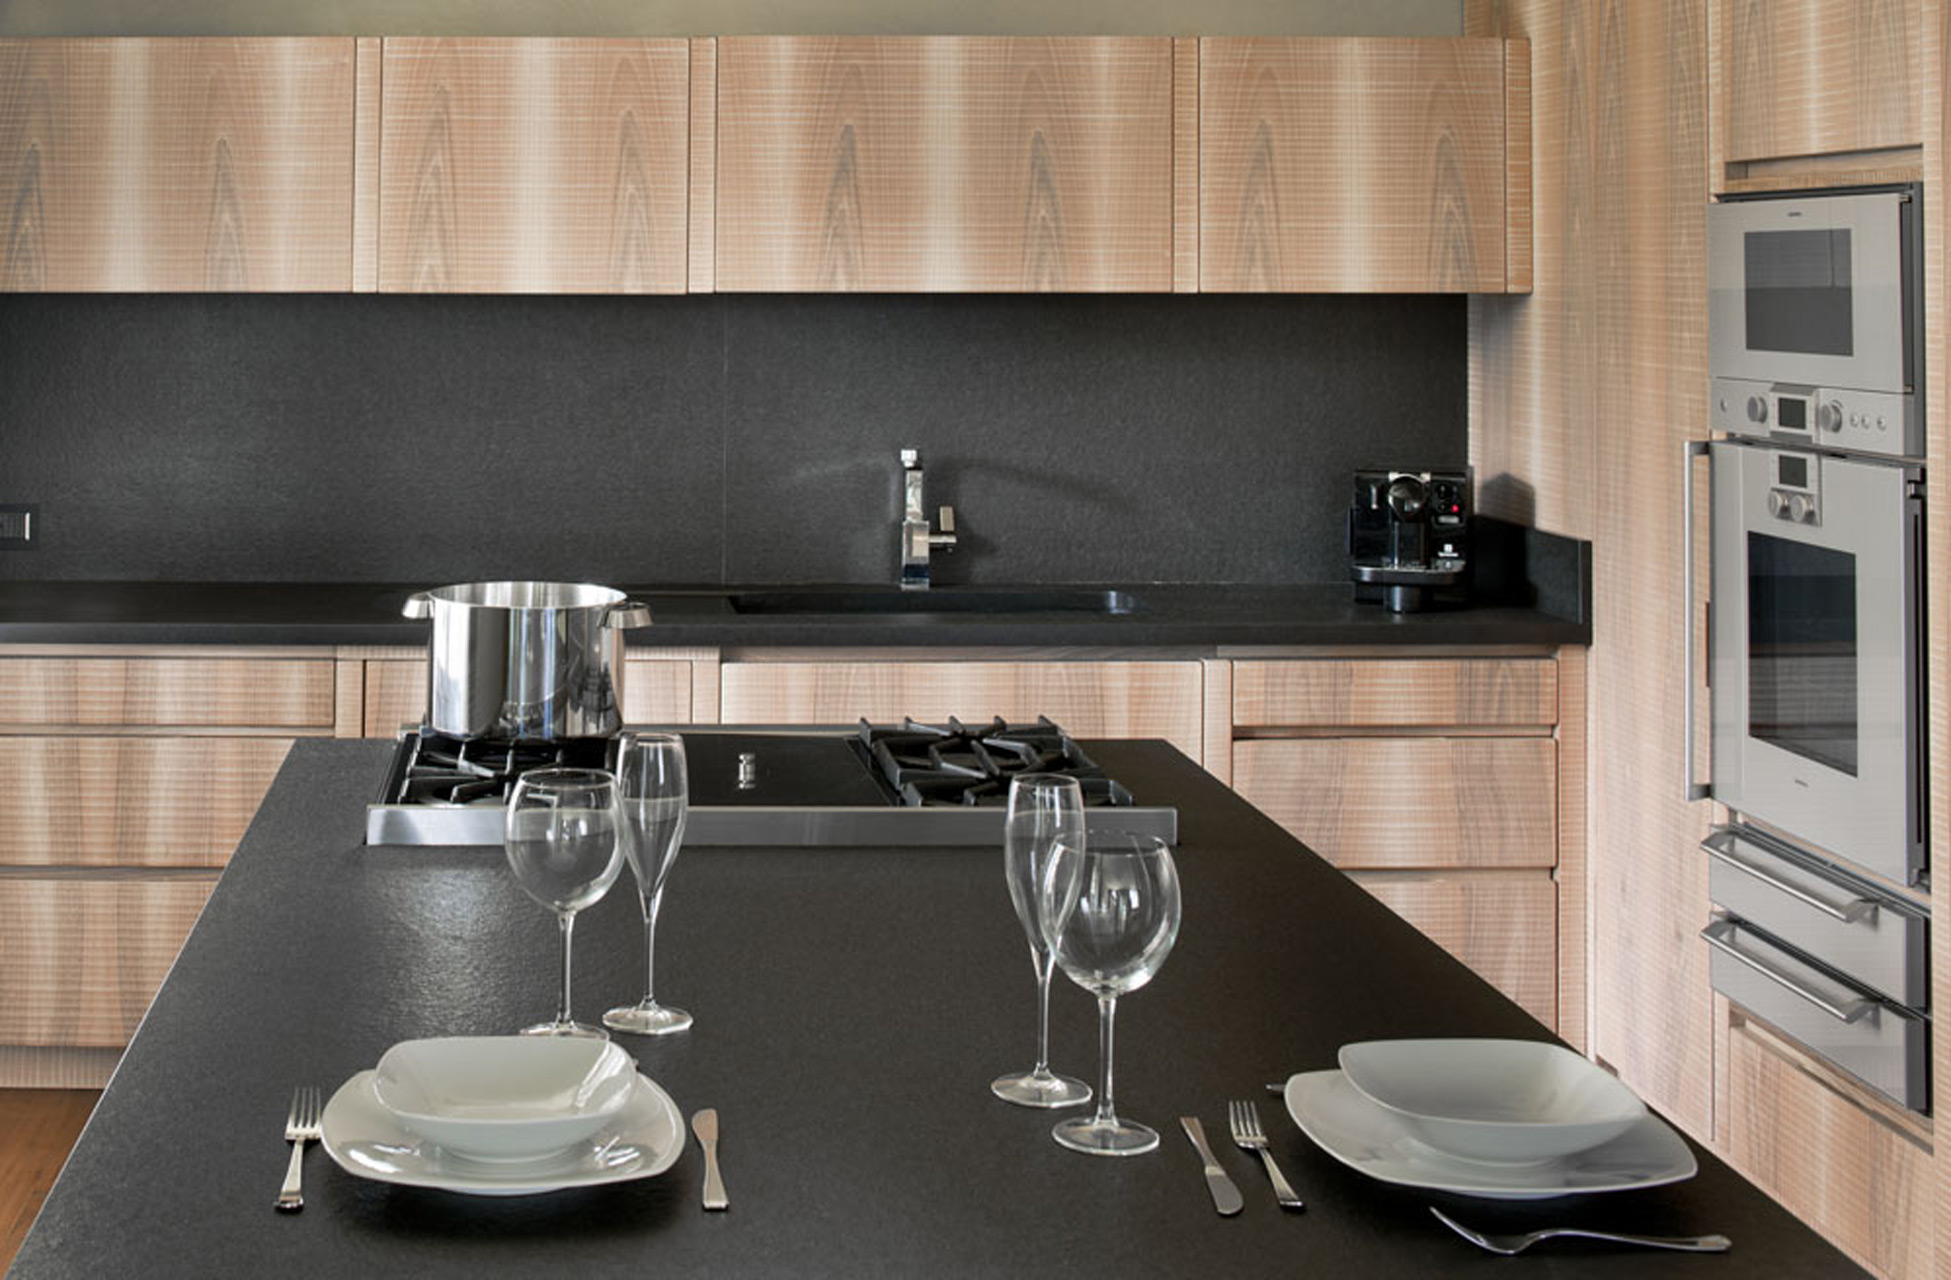 Kitchen in Italian walnut with sheer black granite surface.